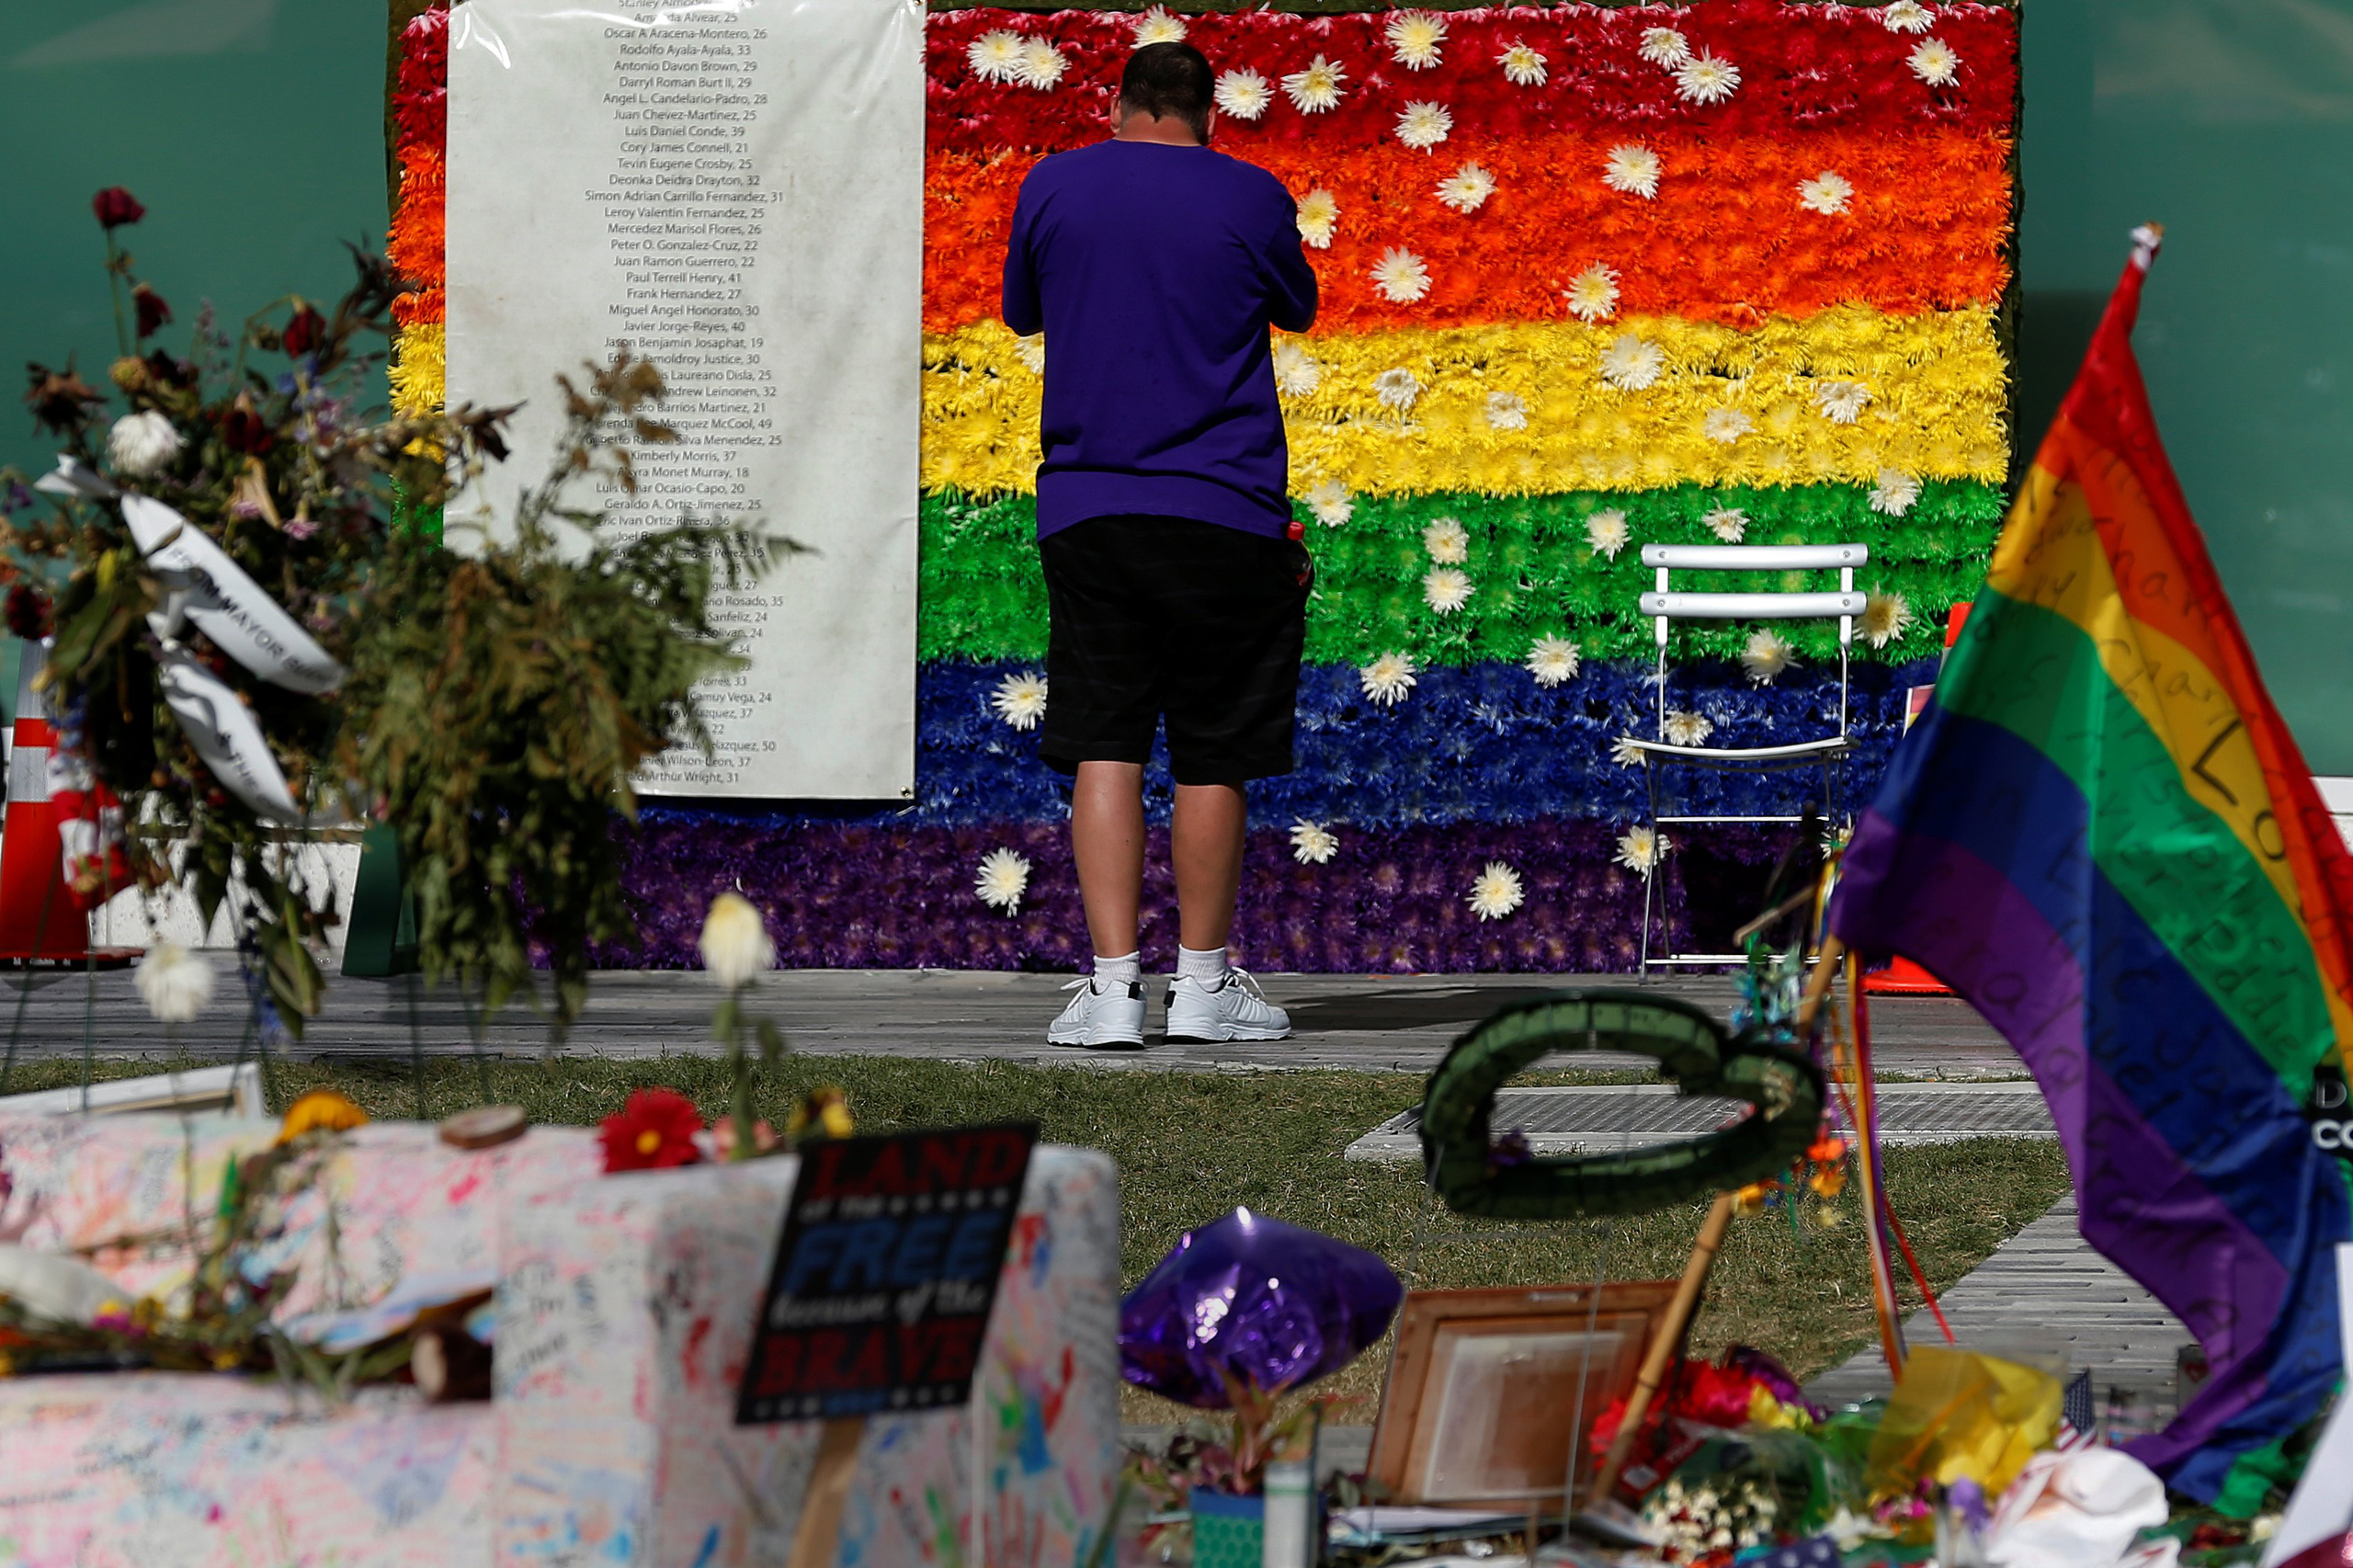 A man pays respect at a rainbow flower wall as part of the makeshift memorial for the Pulse nightclub mass shooting victims last week in Orlando, on June 21, 2016.